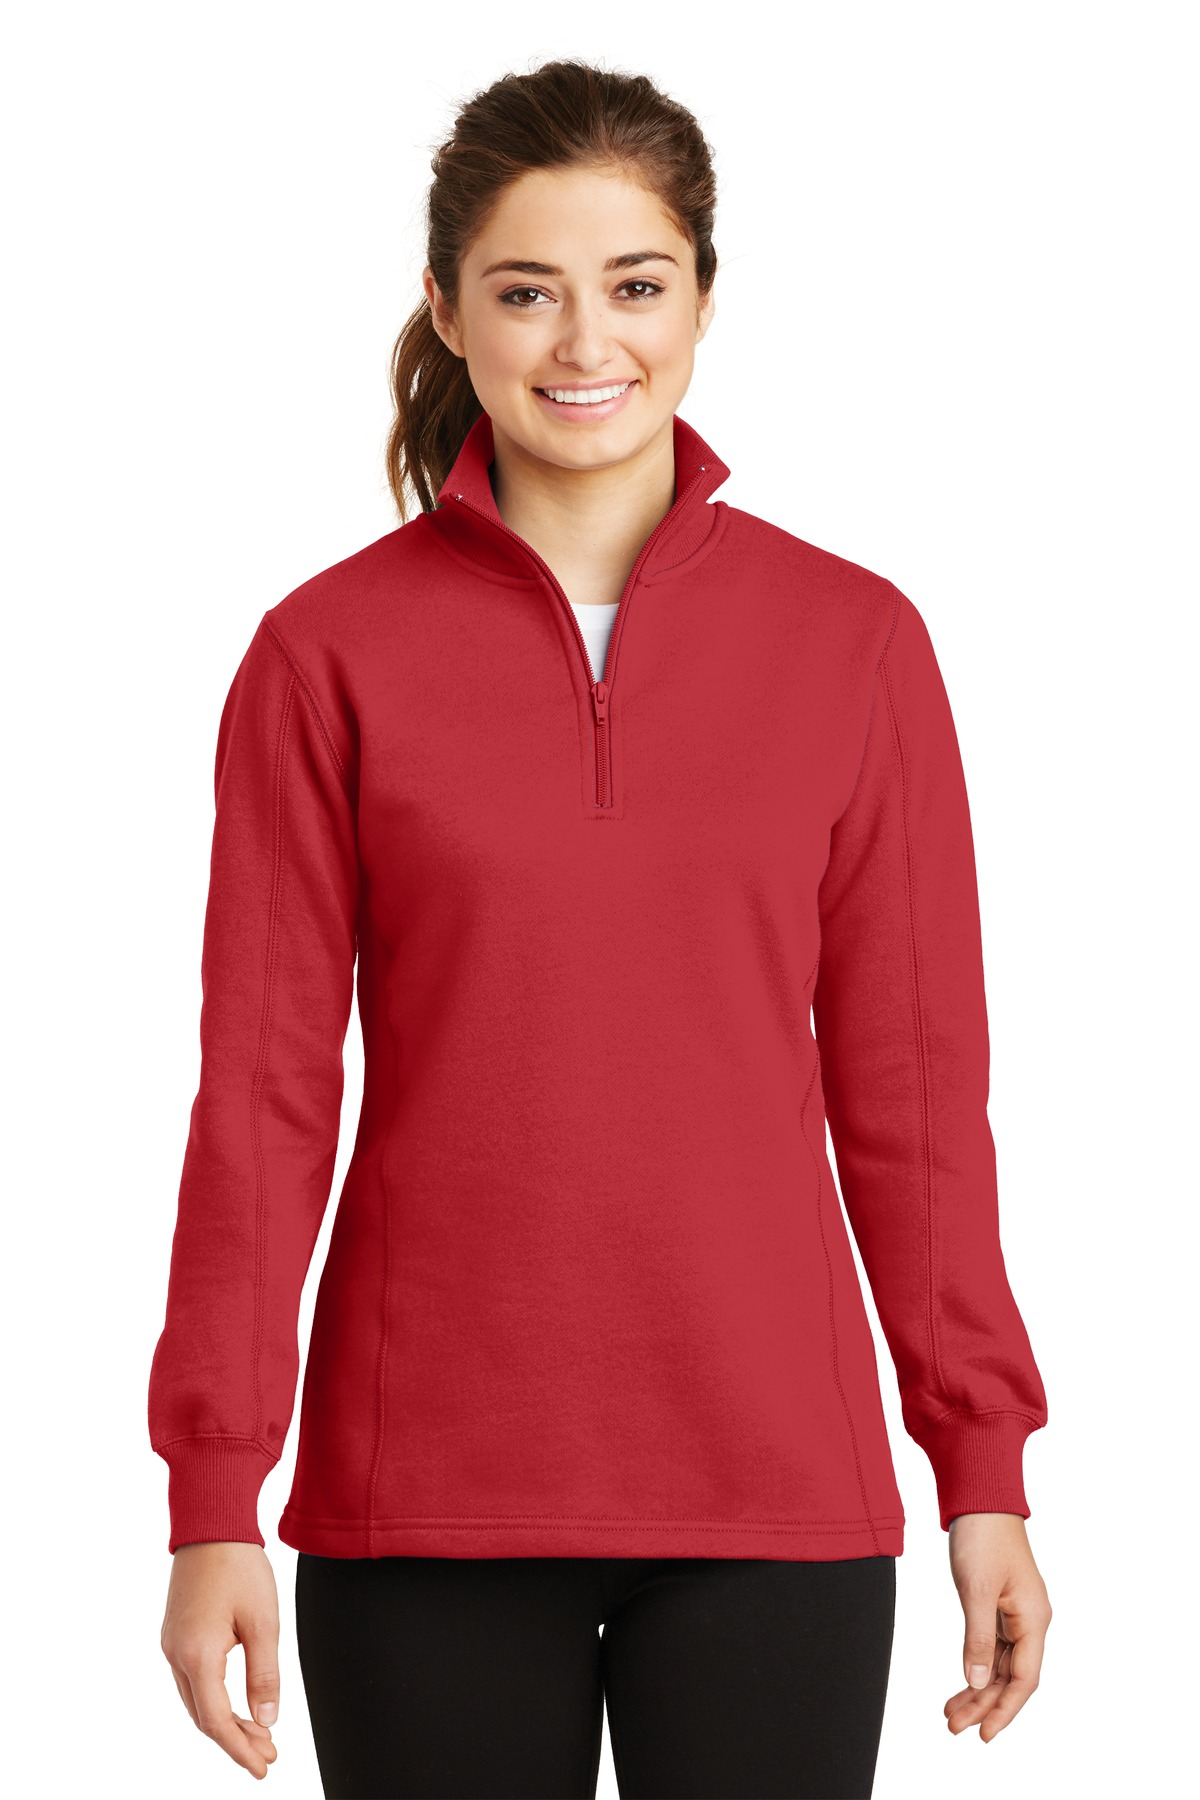 Sport-Tek ®  Ladies 1/4-Zip Sweatshirt. LST253 - True Red